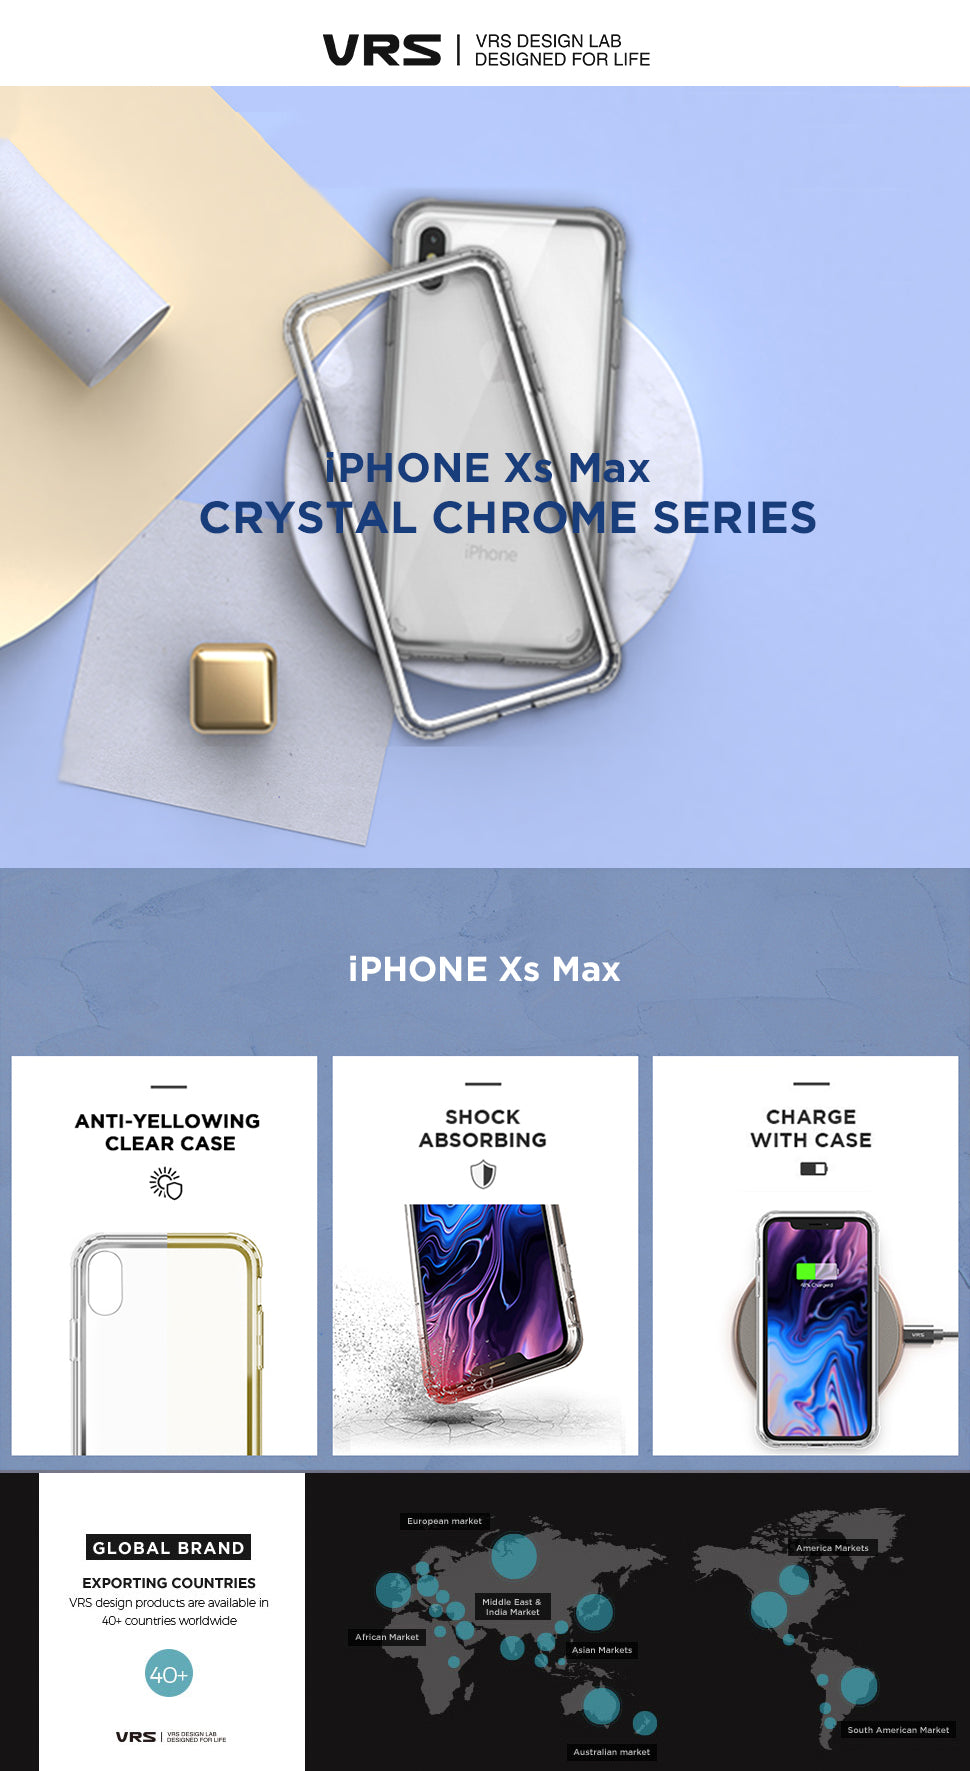 Best Clear Case for iPhone Xs Max Crystal Chrome Series From VRS Design